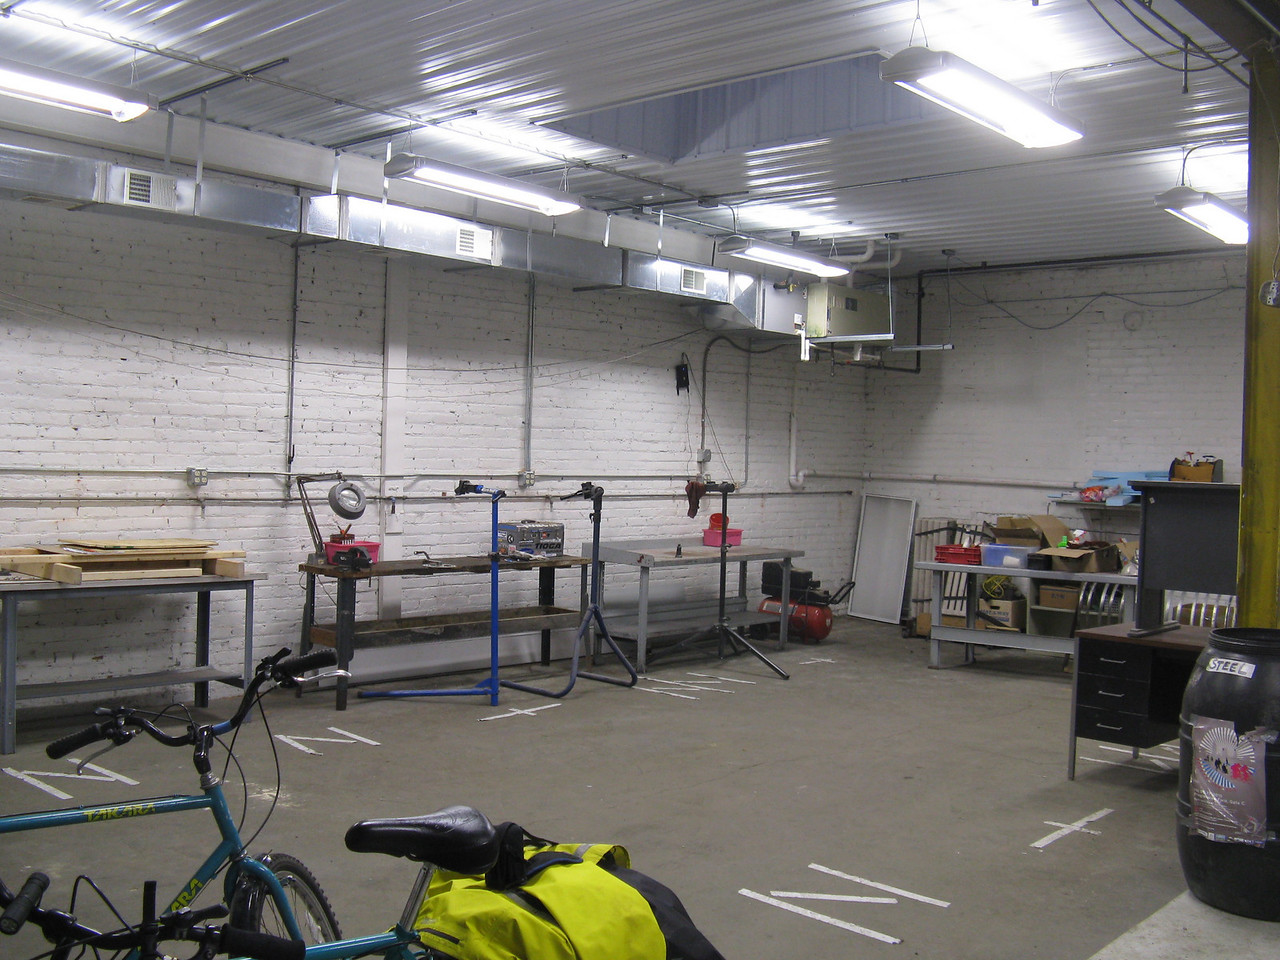 The brightly lit member's shop, complete with skylight.  More benches complete with tools on pegboards have not been finished yet.